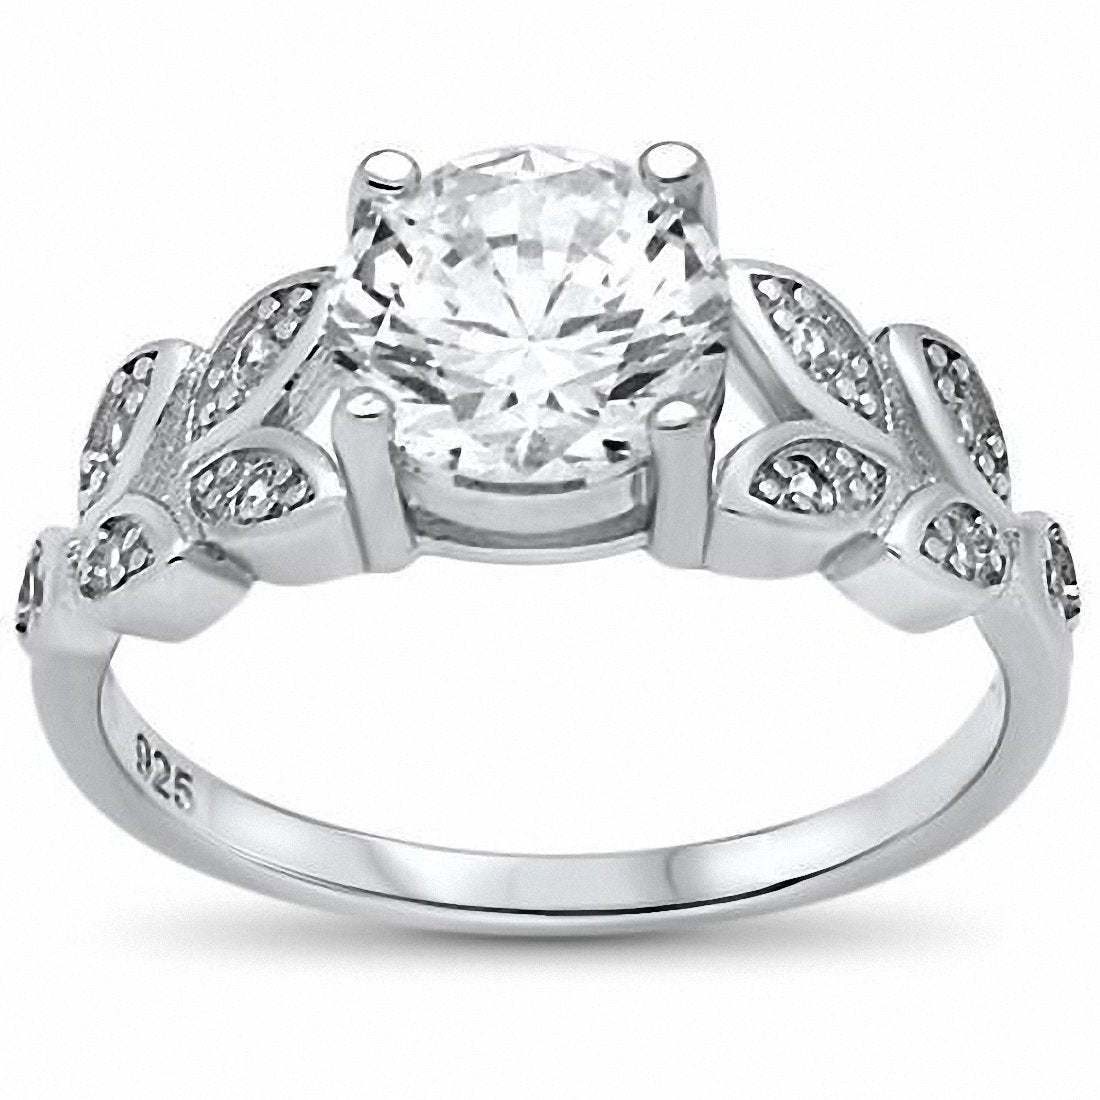 Art Deco Engagement Ring Round Cubic Zirconia 925 Sterling Silver Choose Color